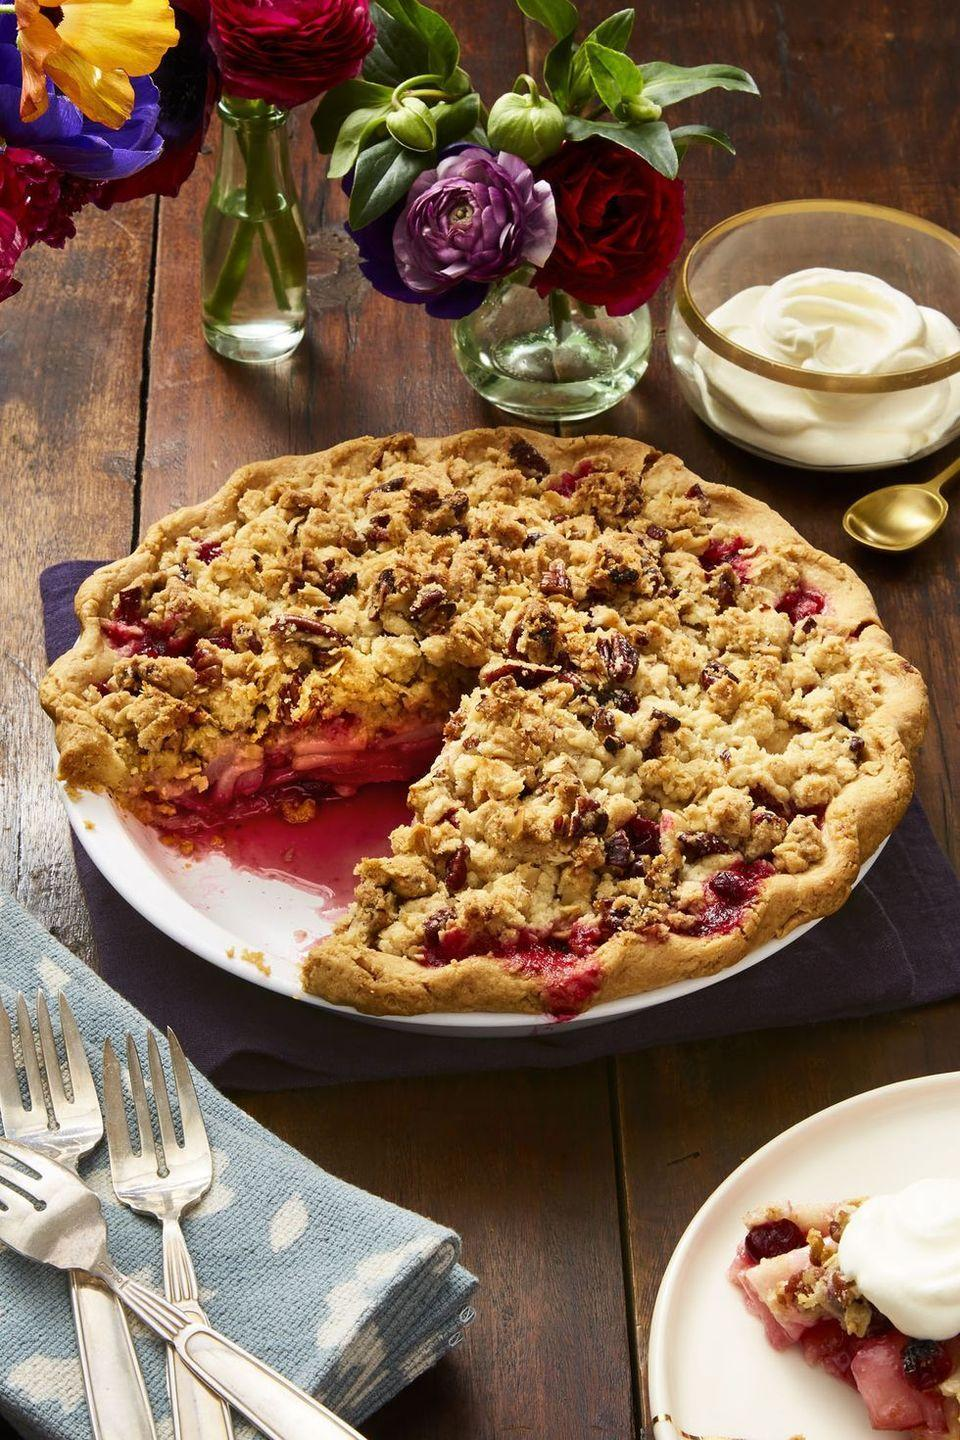 """<p>Ginger, tangerine zest, pears and cranberries make a spicy filling, while a classic buttery crumb topping gets extra richness and crunch from pecans.</p><p><em><a href=""""https://www.womansday.com/food-recipes/food-drinks/a24184810/cranberry-pear-pecan-crumb-pie-recipe/"""" rel=""""nofollow noopener"""" target=""""_blank"""" data-ylk=""""slk:Get the recipe from Woman's Day »"""" class=""""link rapid-noclick-resp"""">Get the recipe from Woman's Day »</a></em></p>"""